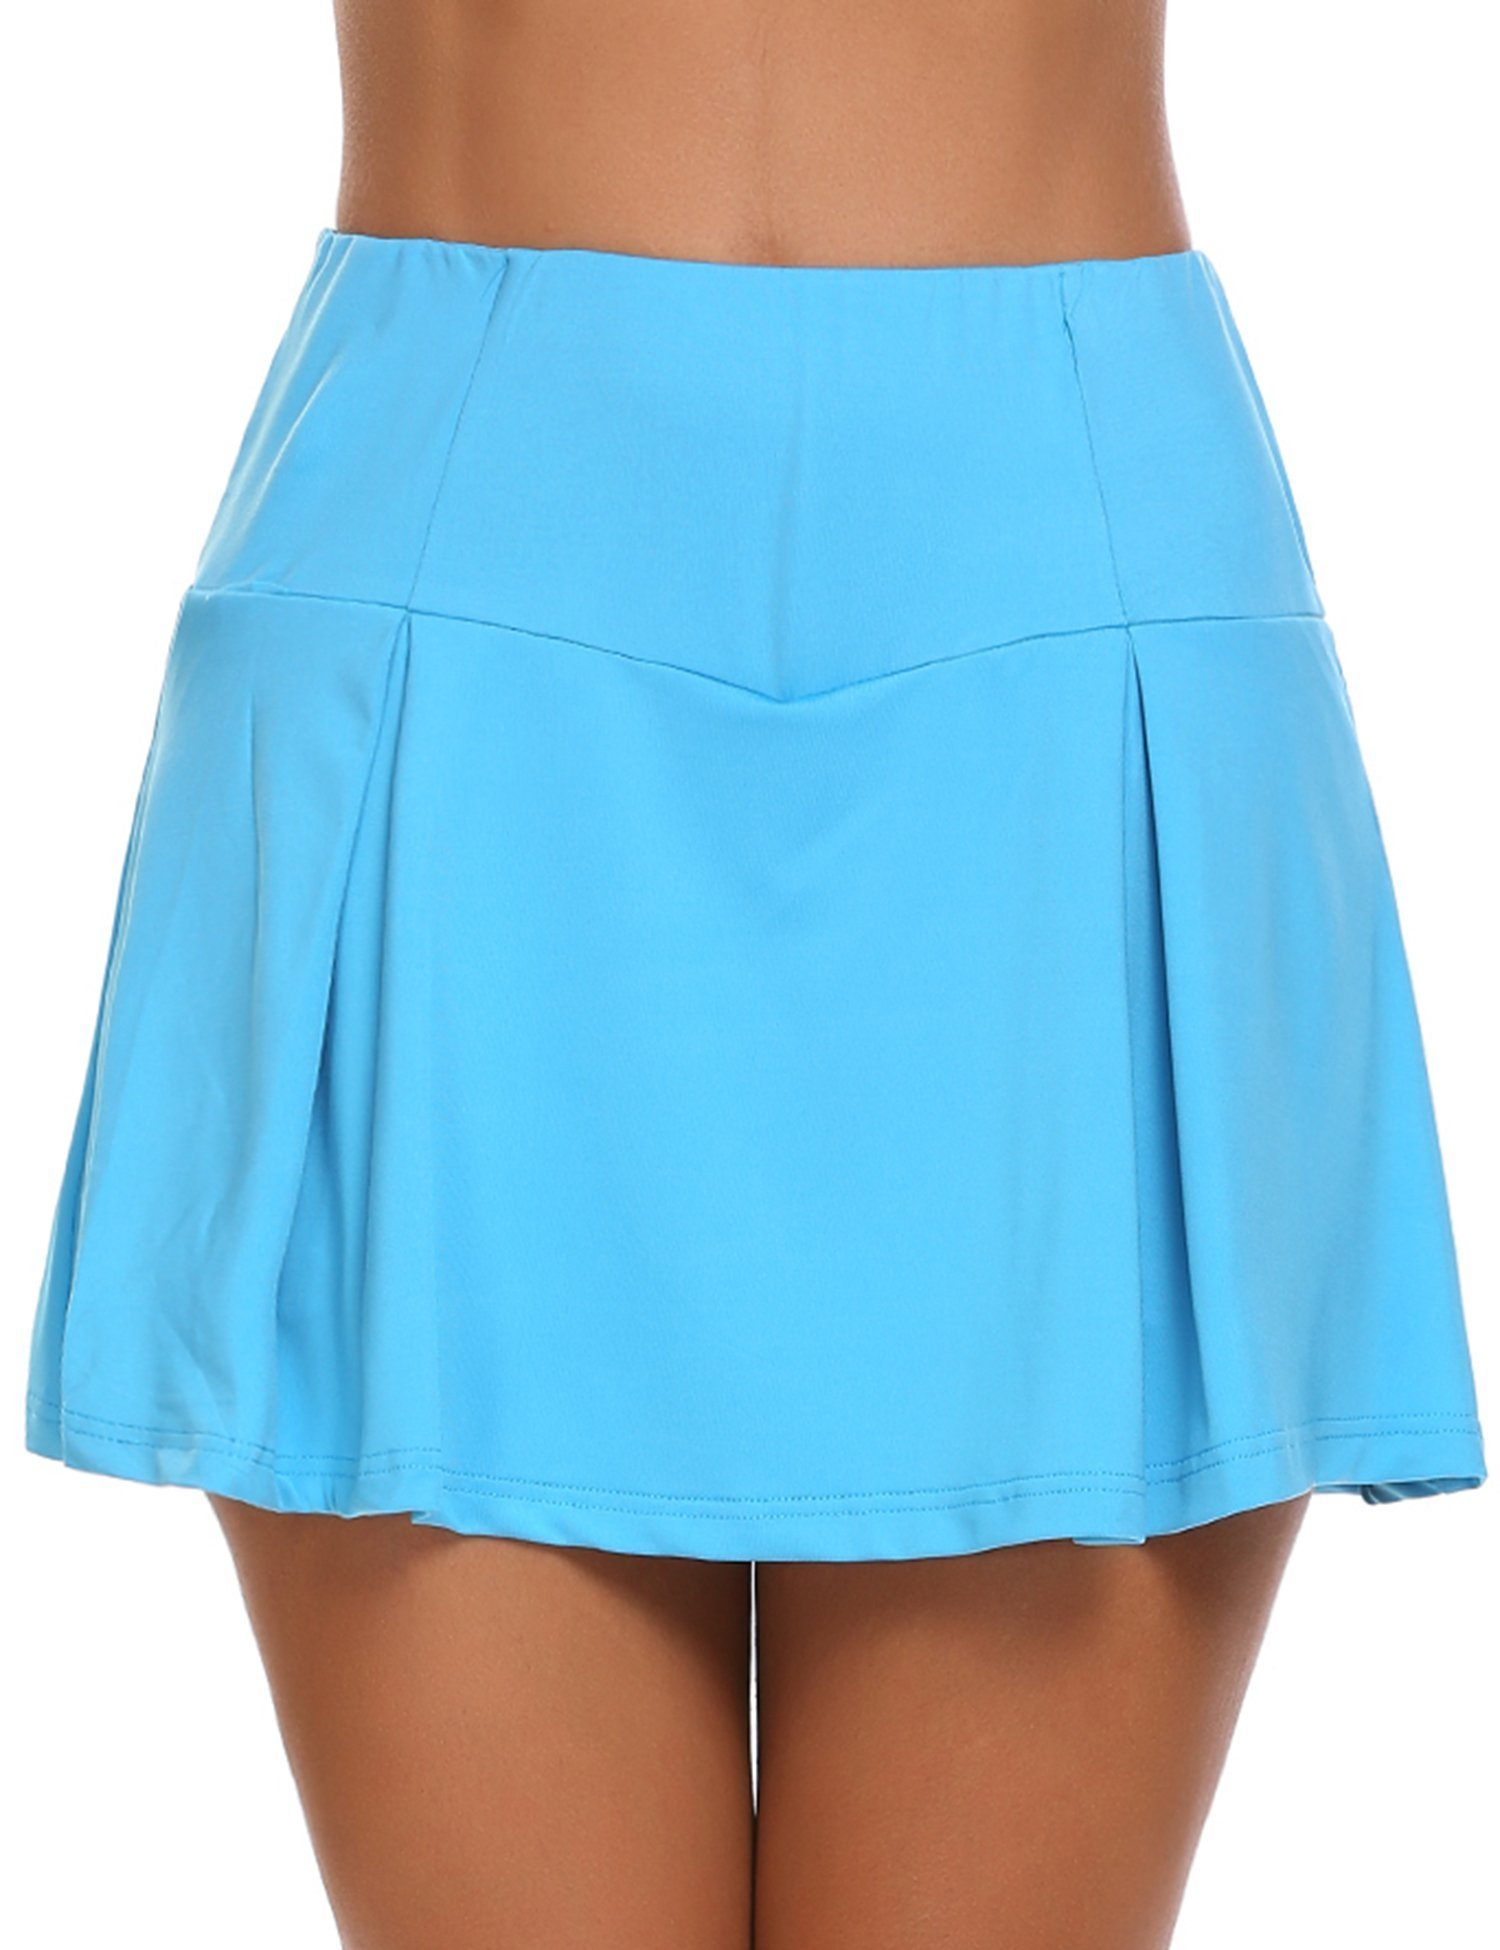 Women's Basic Casual Sports Skorts Gym Tennis Skirt with Shorts